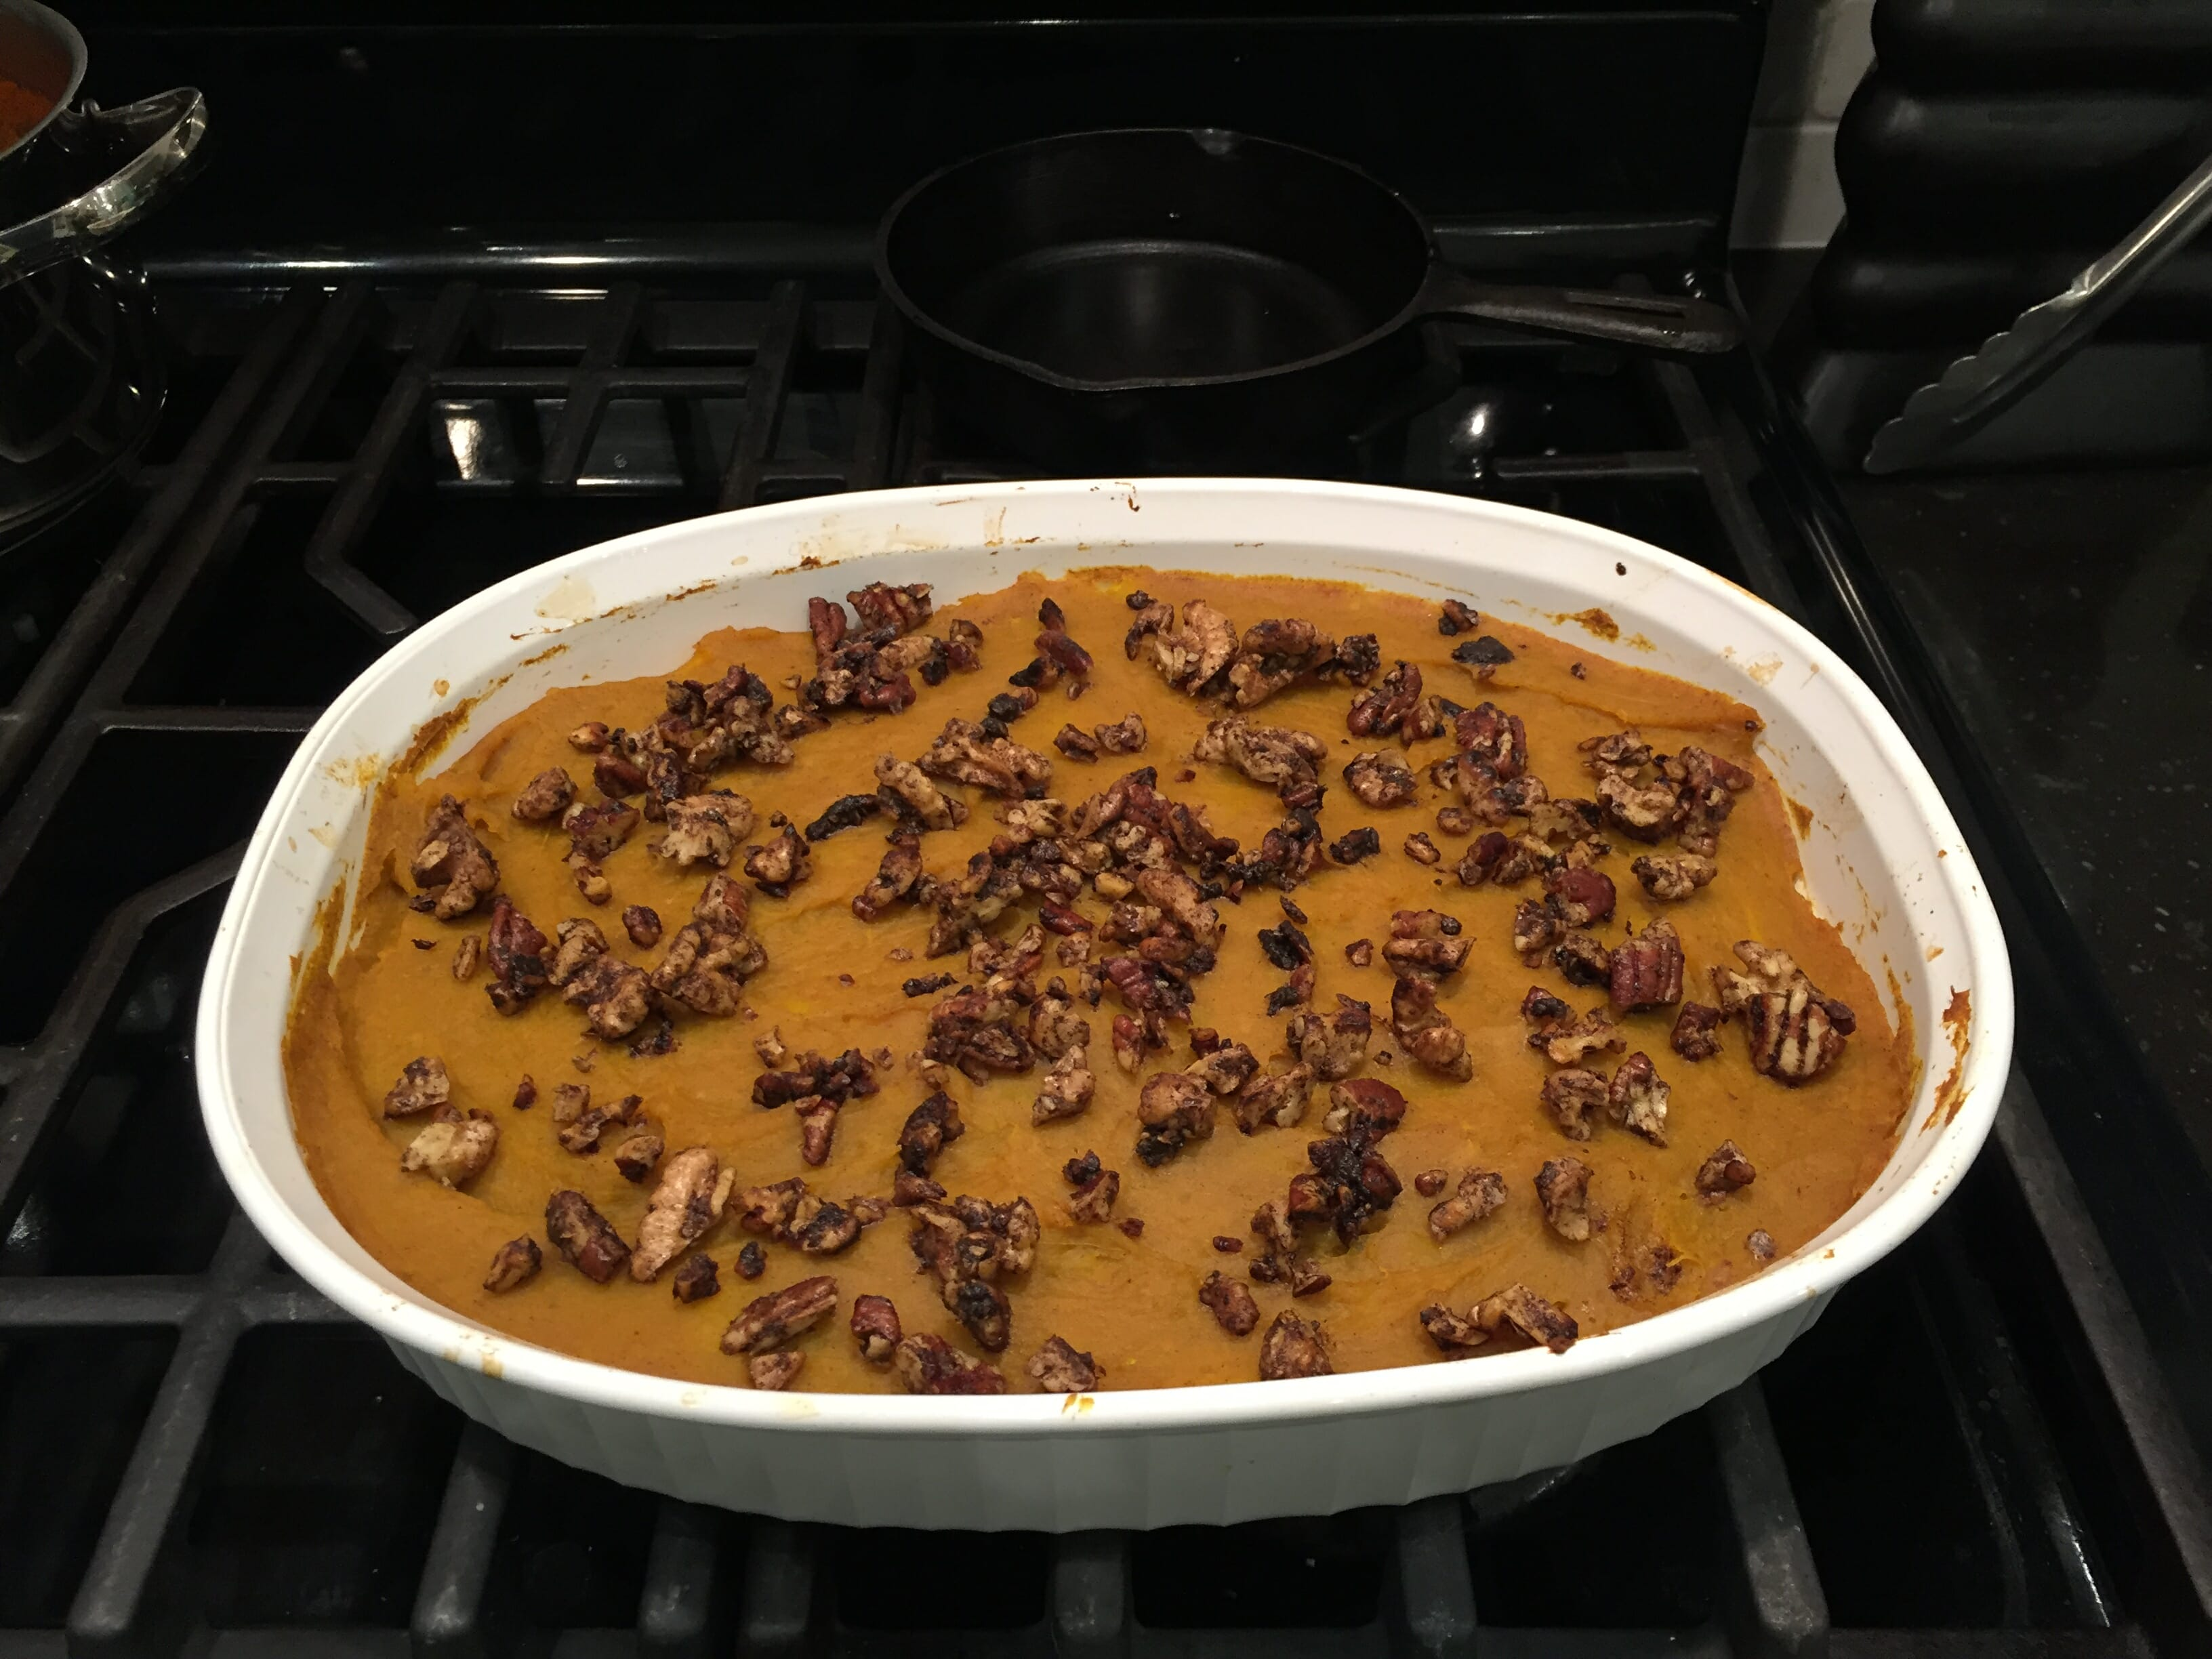 Spiced Squash Casserole on stovetop.